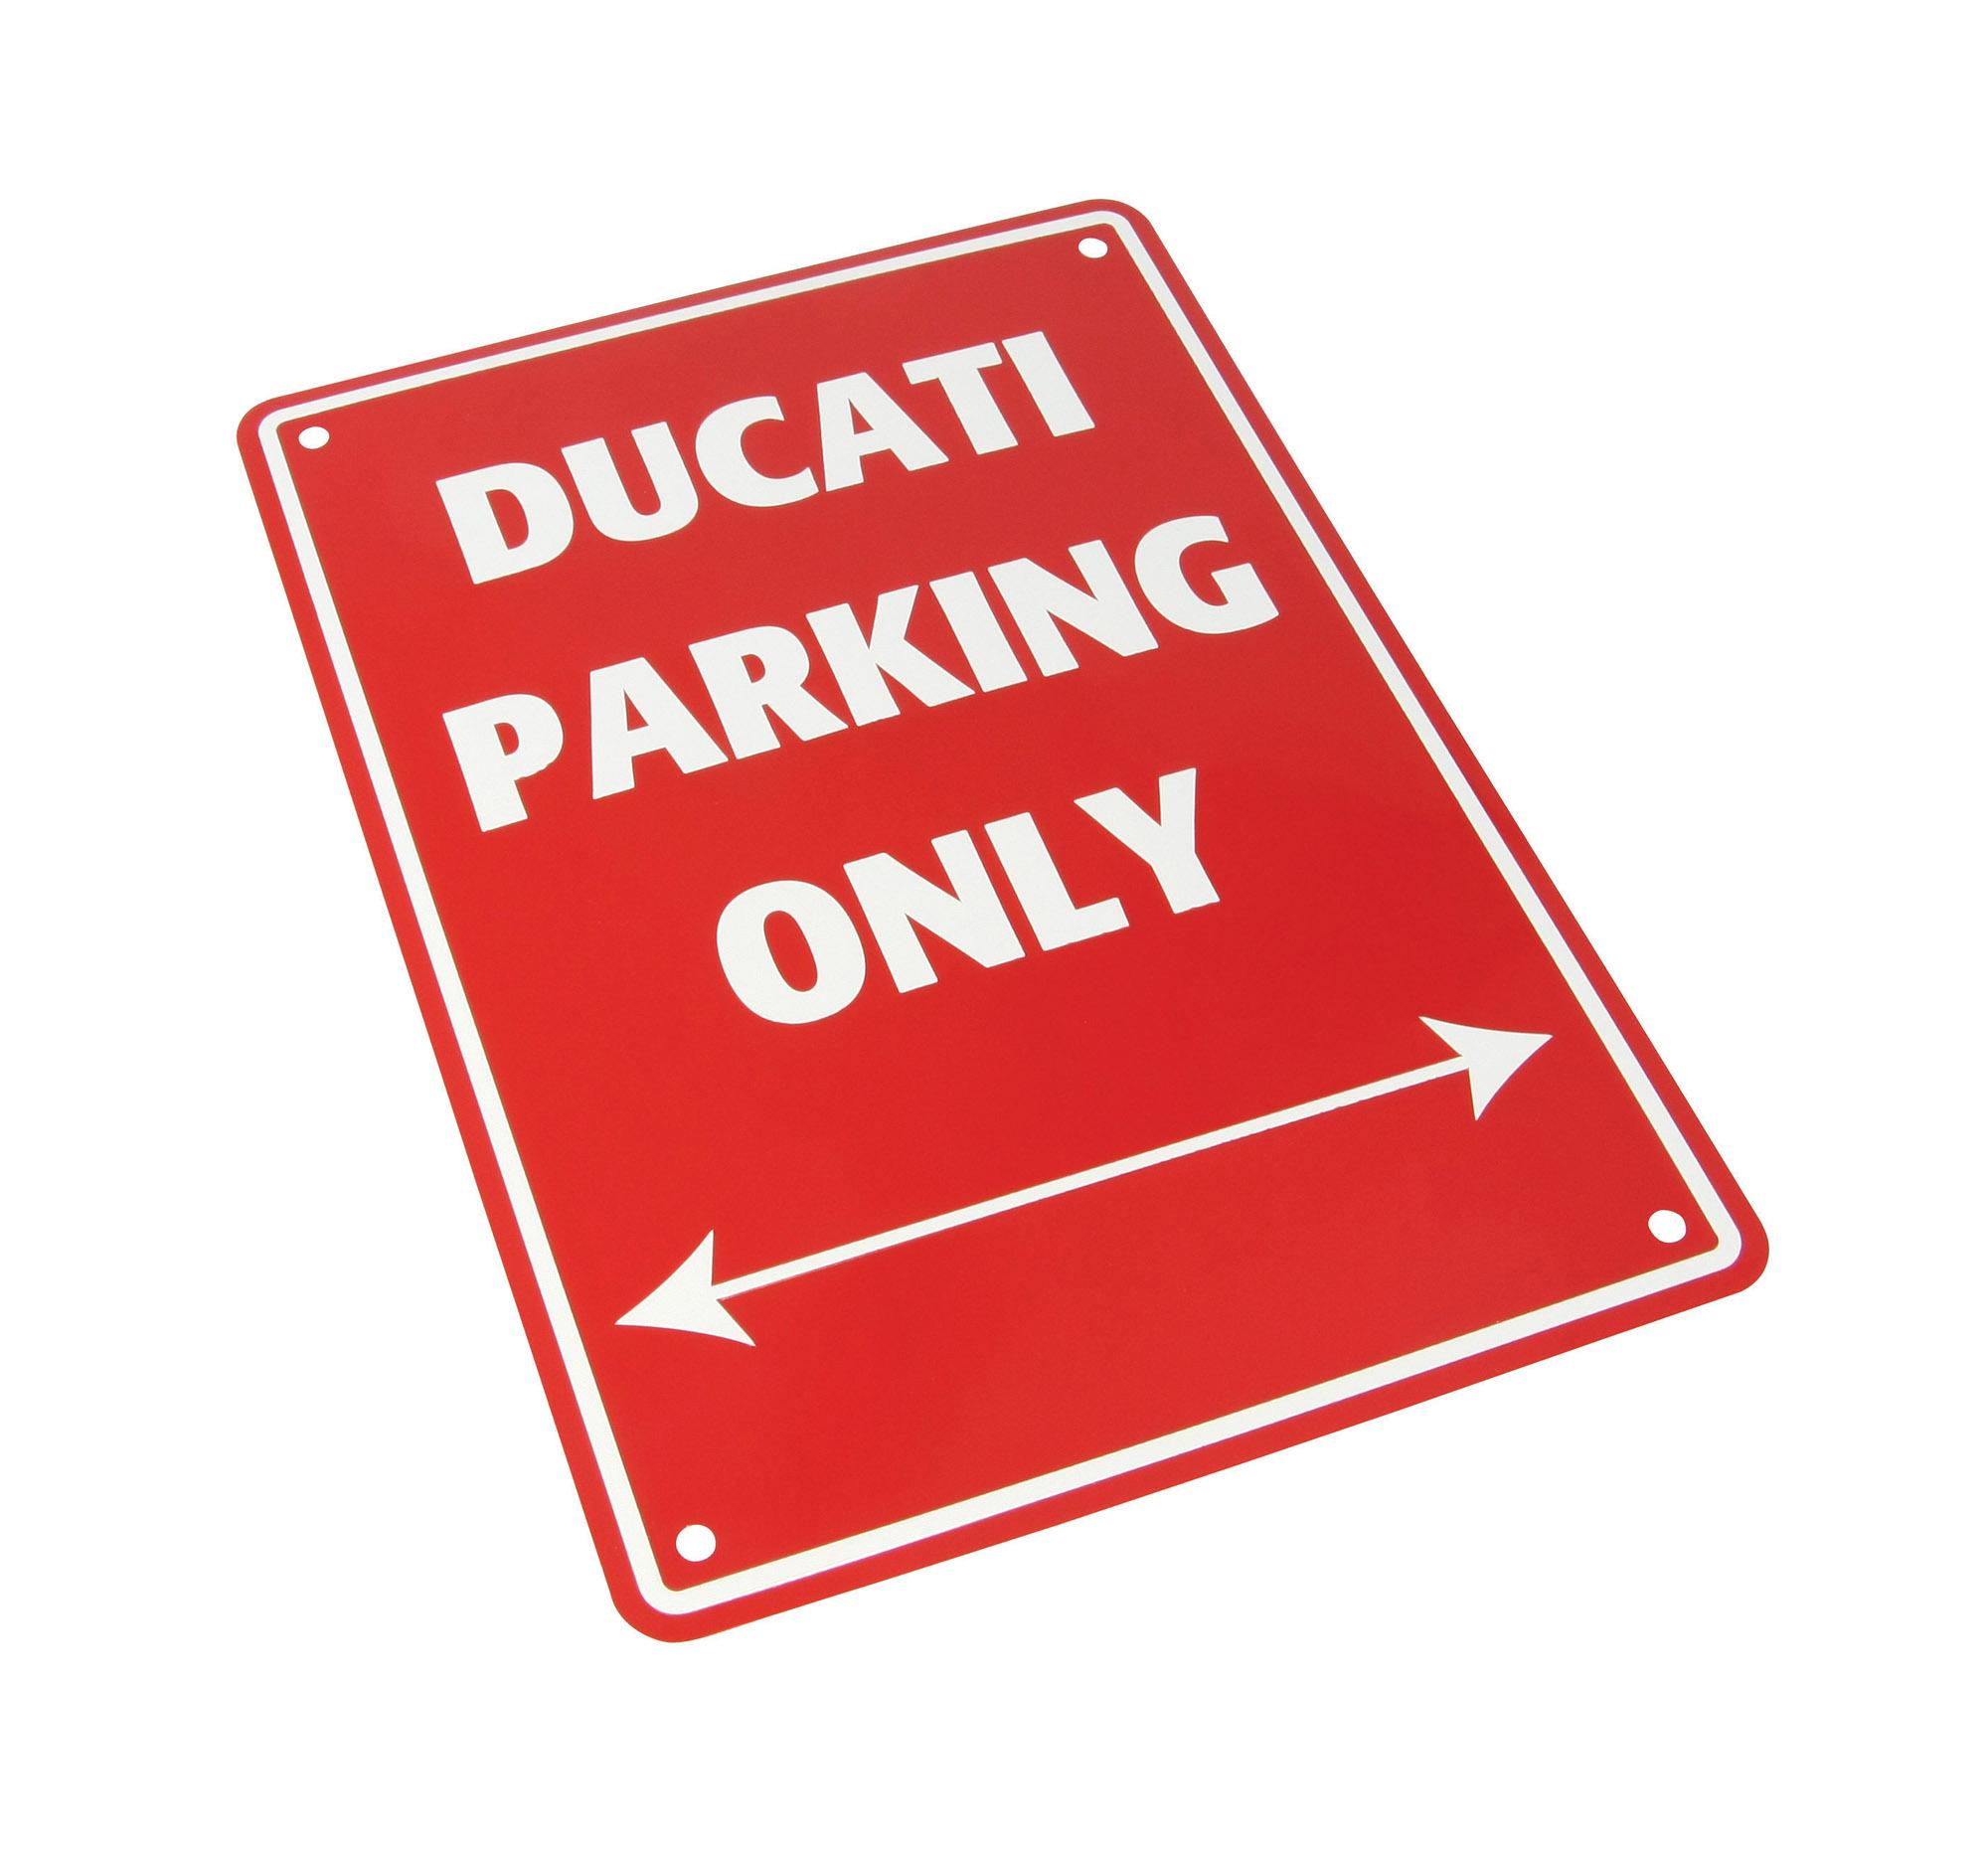 PARKING SIGN Ducati Parking Only